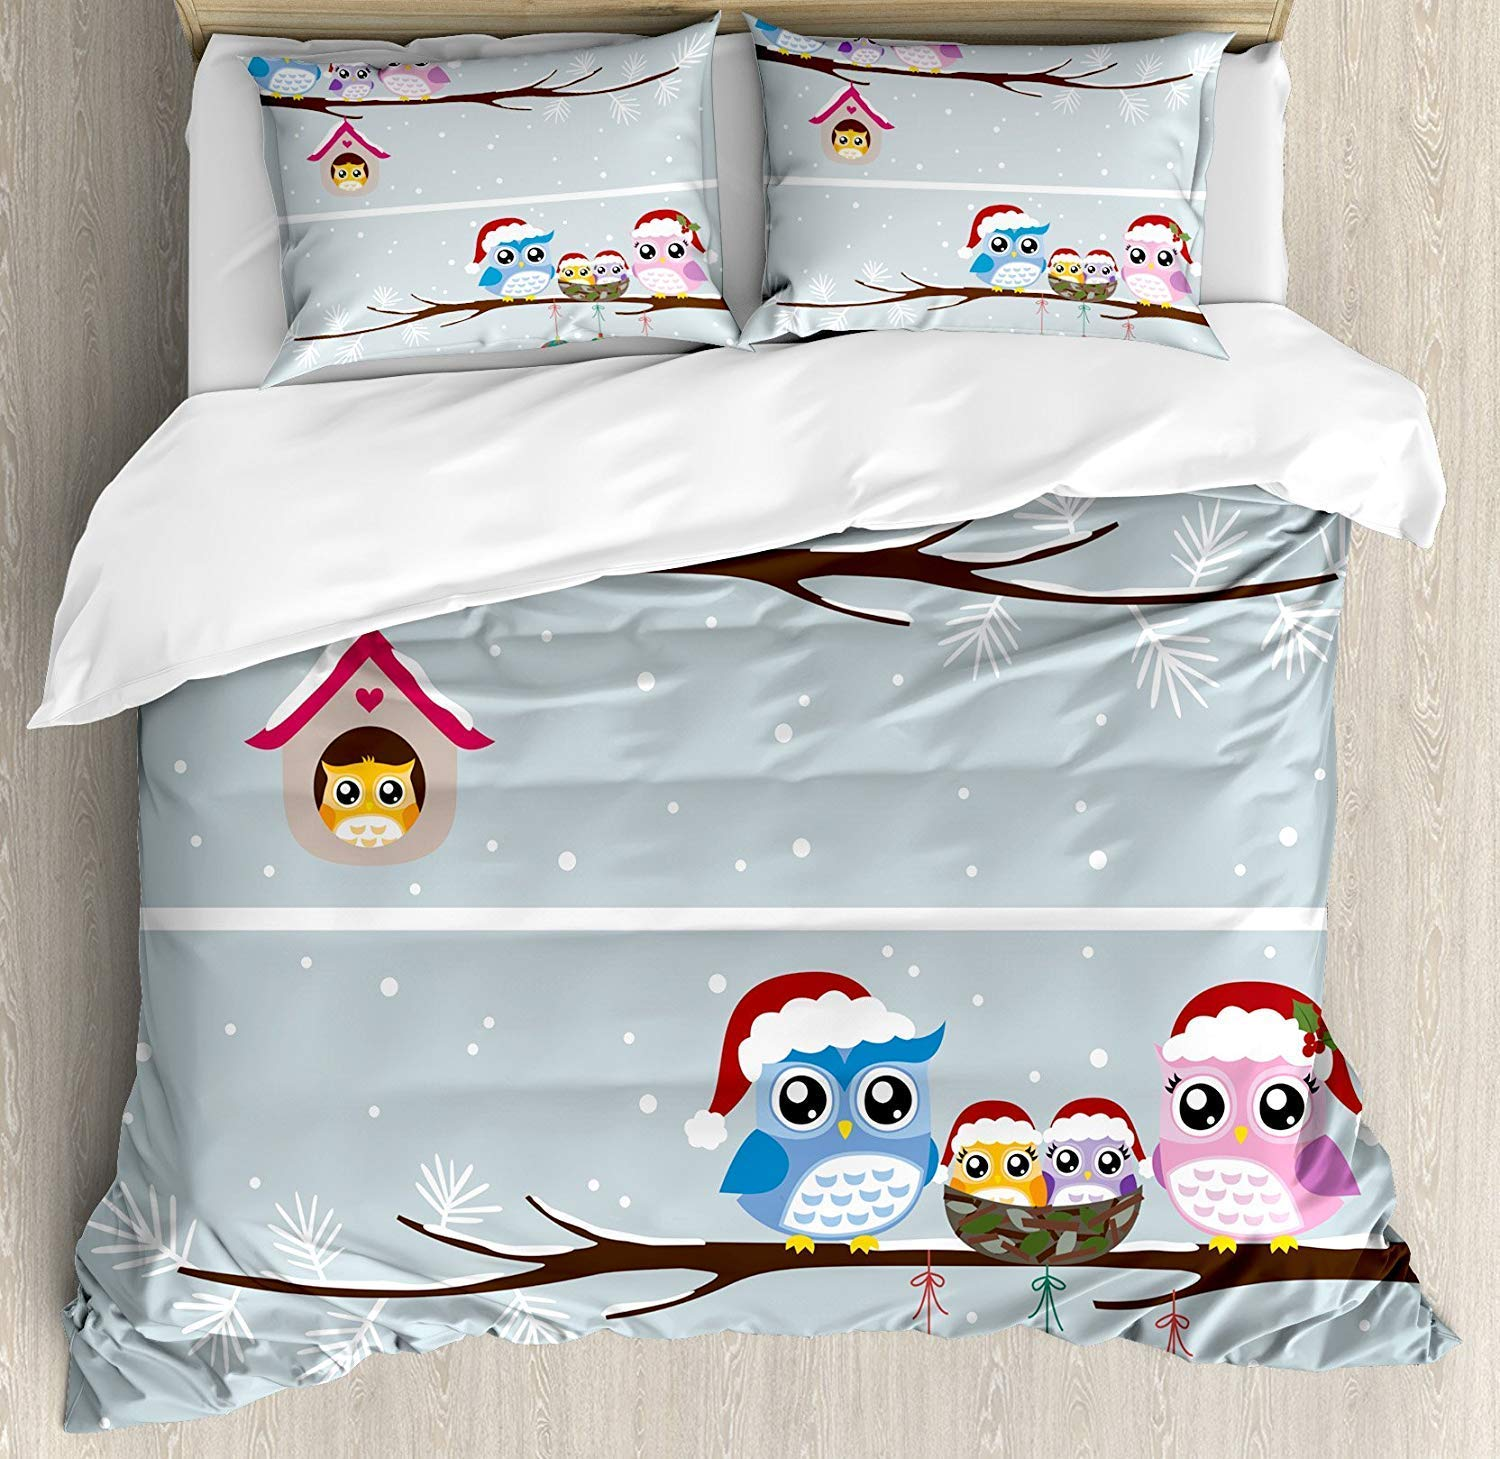 Soefipok Owl Family Christmas Duvet Cover Set - Buy Christmas Duvet Covers